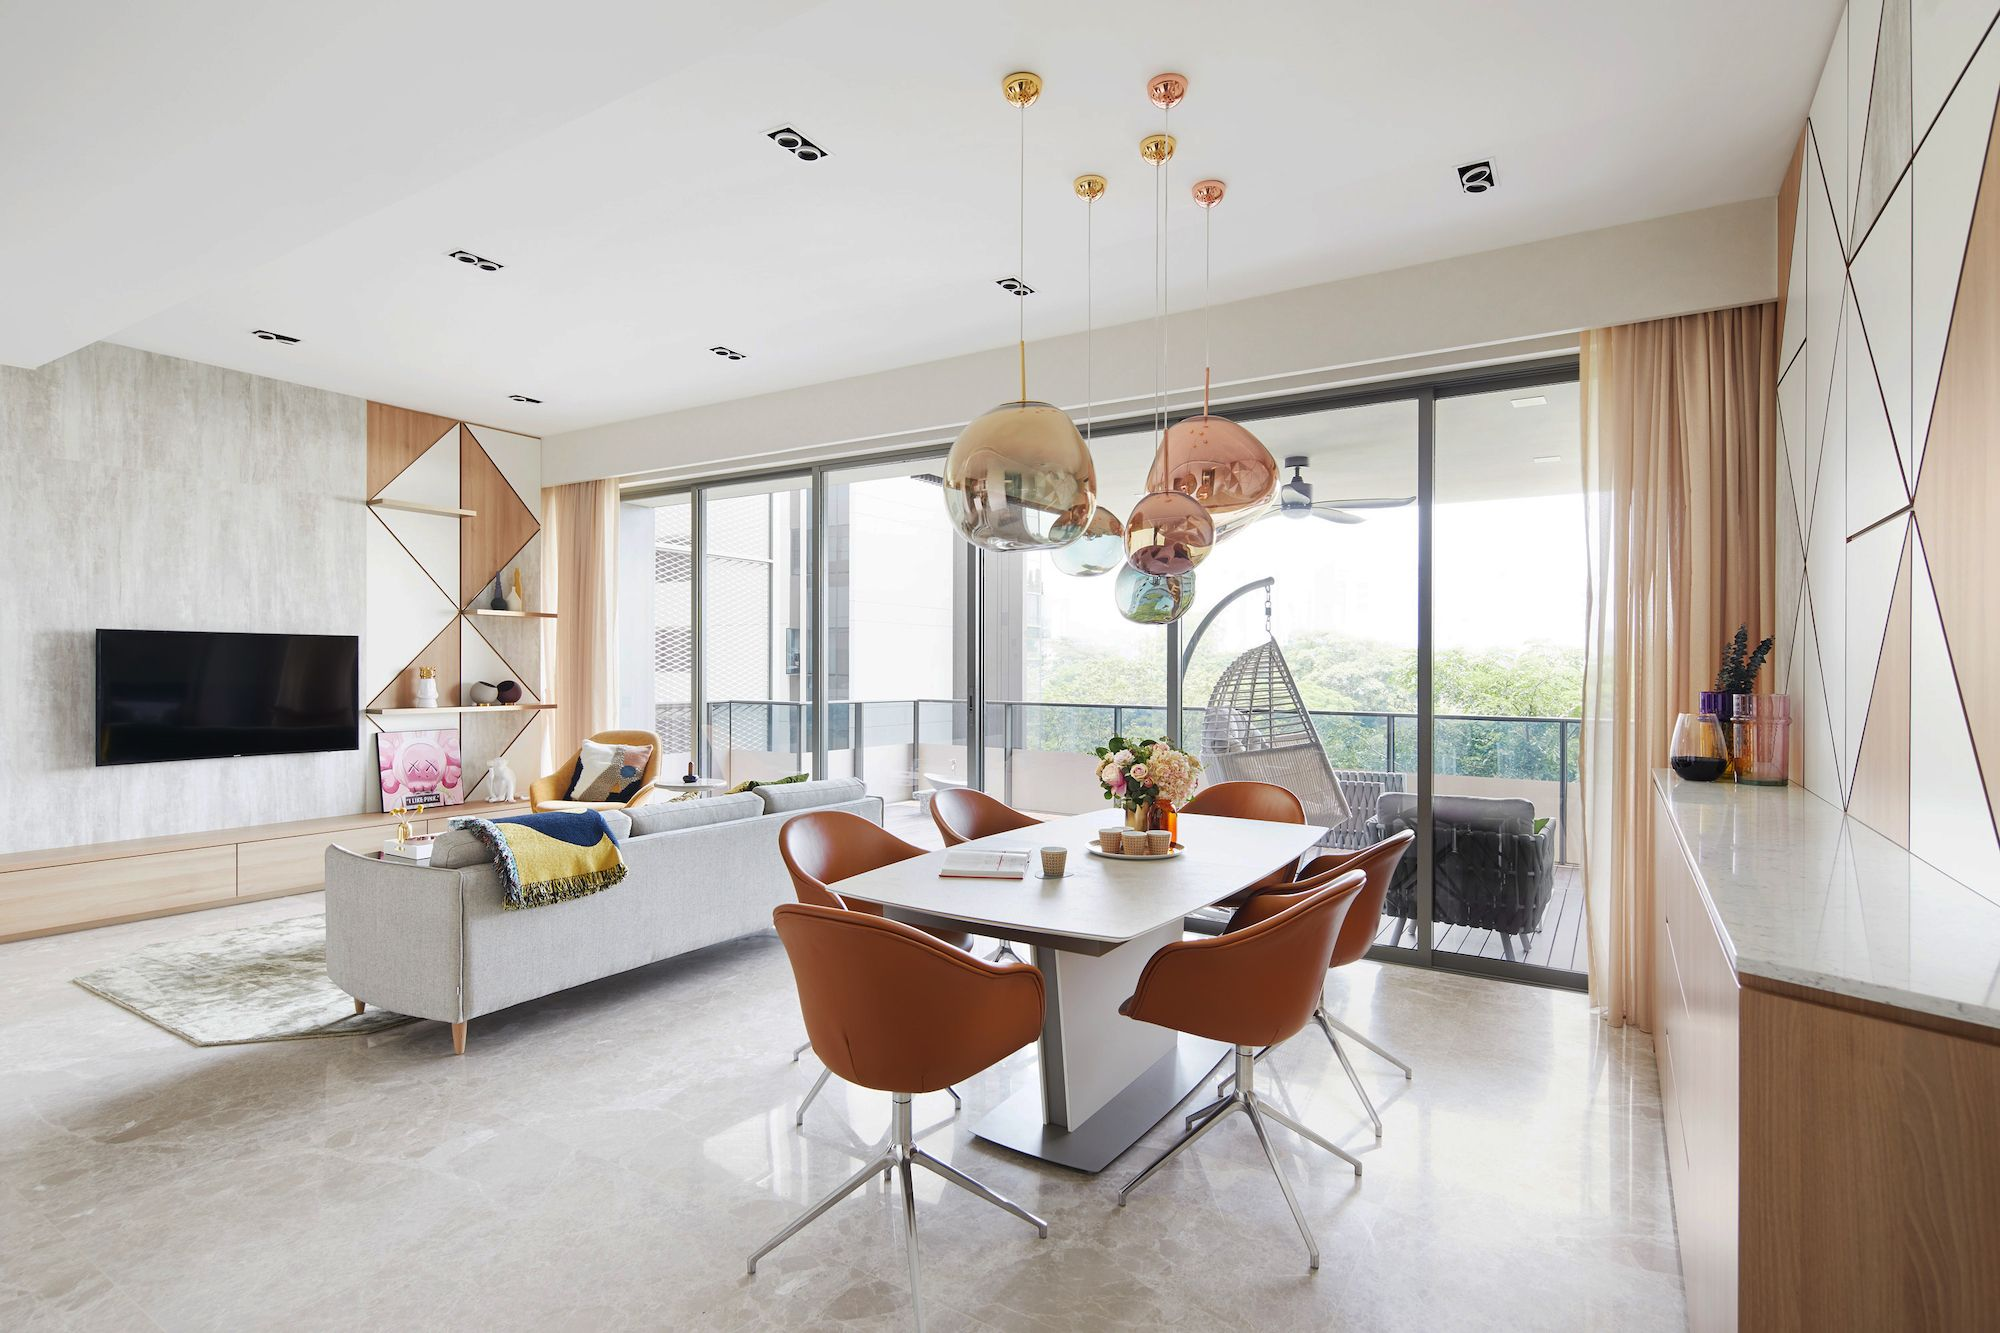 Clean, Scandinavian Chic for the Art Lovers at Leedon Residence